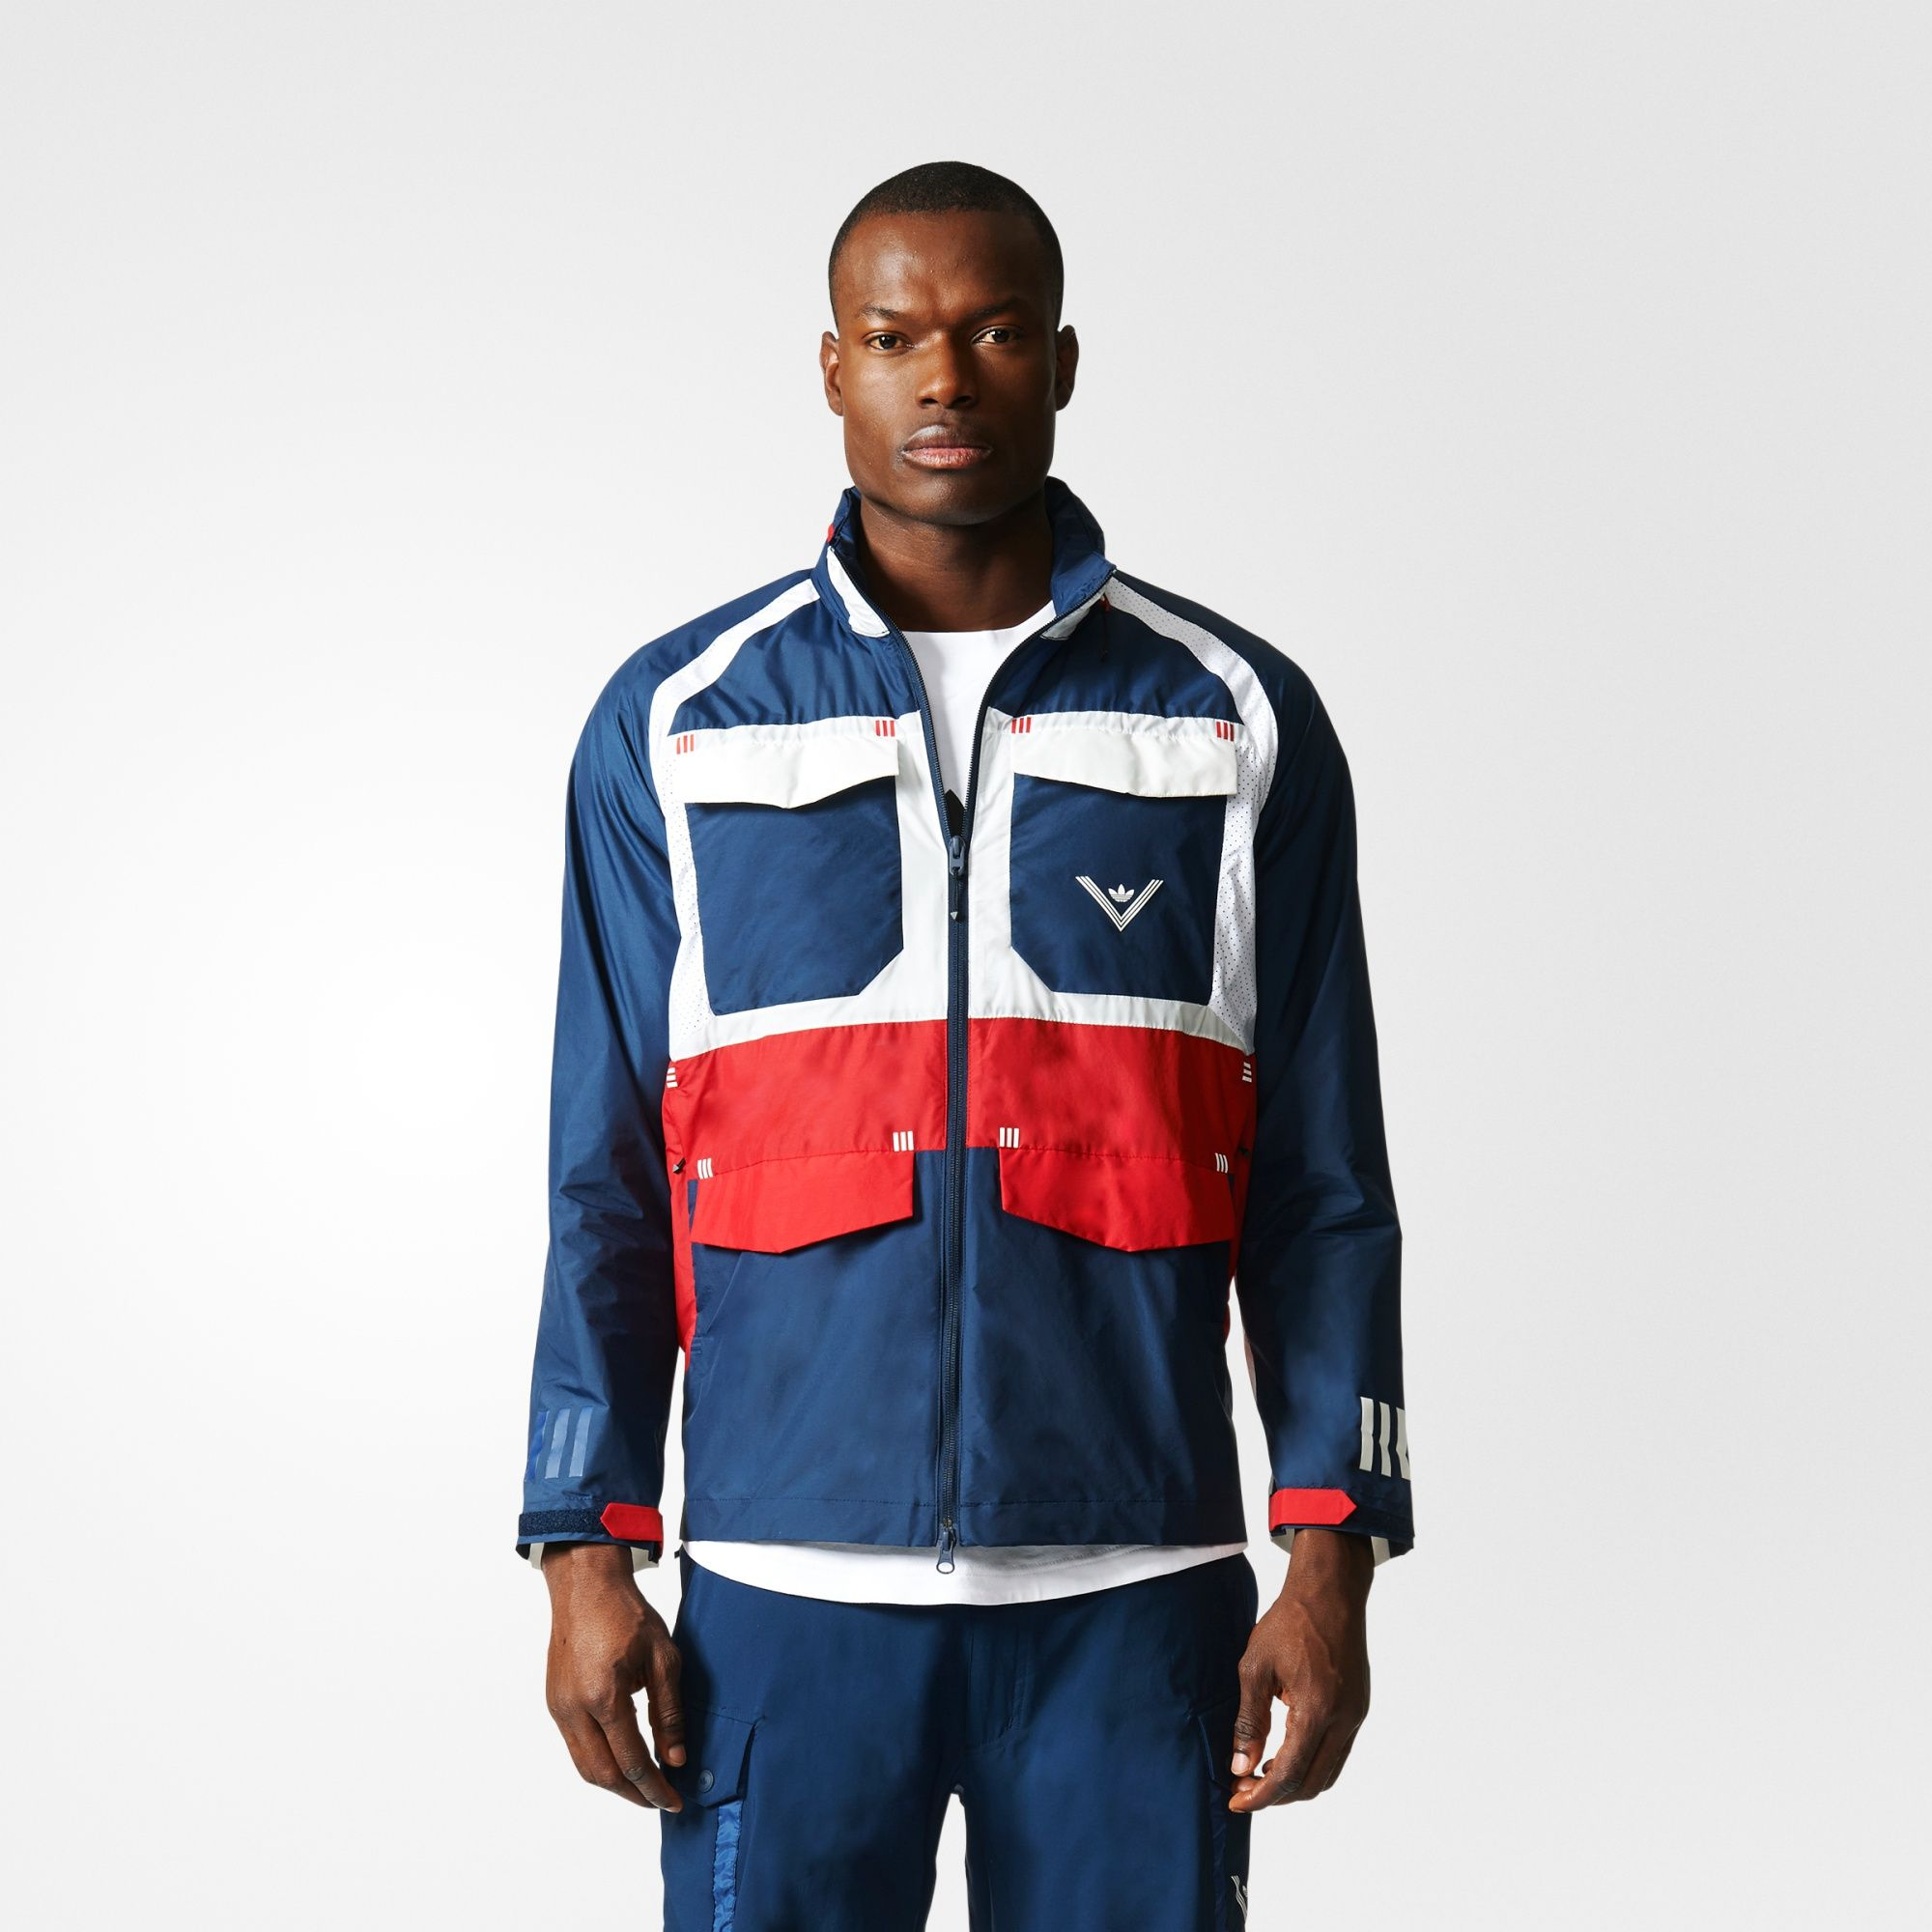 Technical outdoor wear and modern design language have inspired White Mountaineering since its inception in 2006. The collaboration between the Tokyo-based brand and adidas Originals elevates archival pieces with hiking and outdoor elements. This men's windbreaker takes inspiration from the urban landscape for a look that's technical but stylish enough for city streets. It's made in plain weave fabric and accented with contrast panels and utility pockets. The cuffs feature reflect...